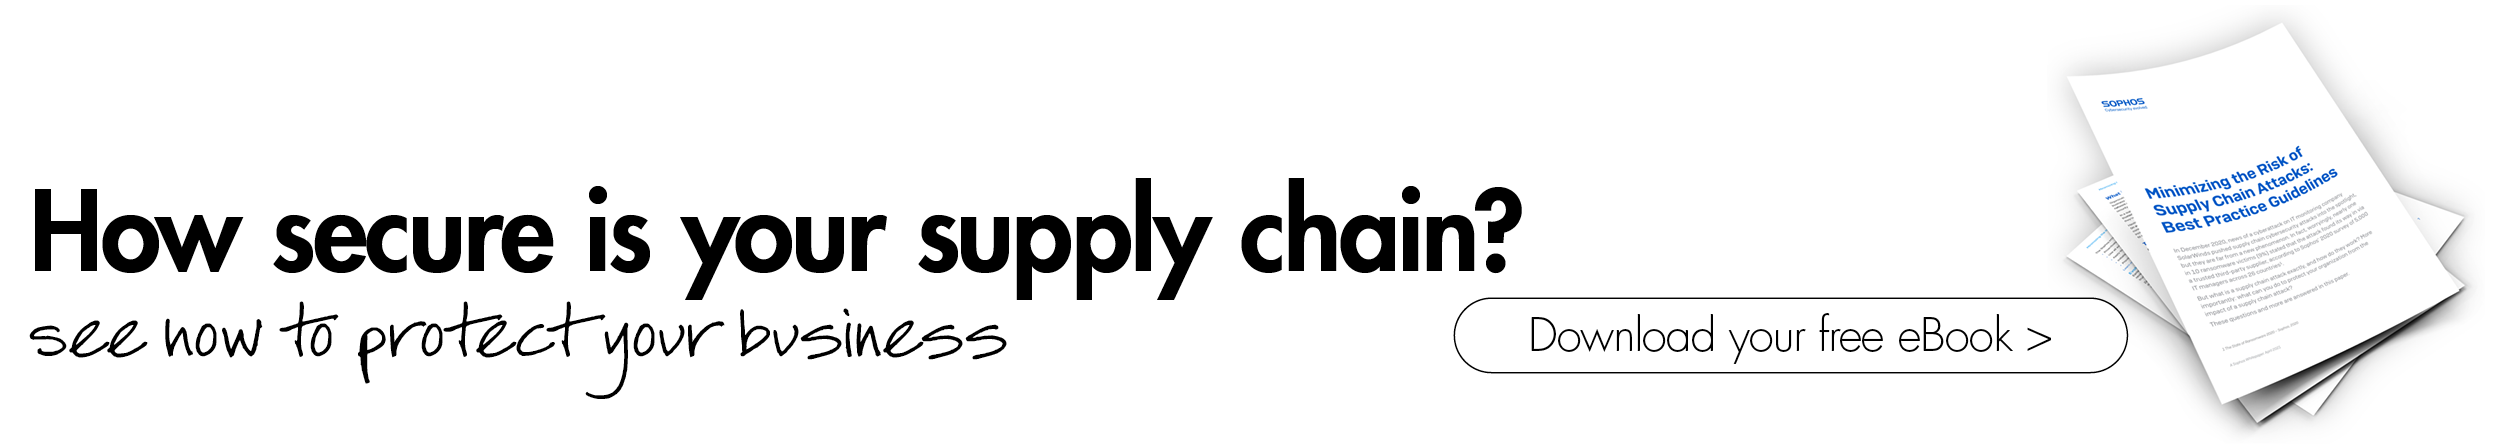 Minimise the risk of supply chain attacks See best practice guidelines for your business